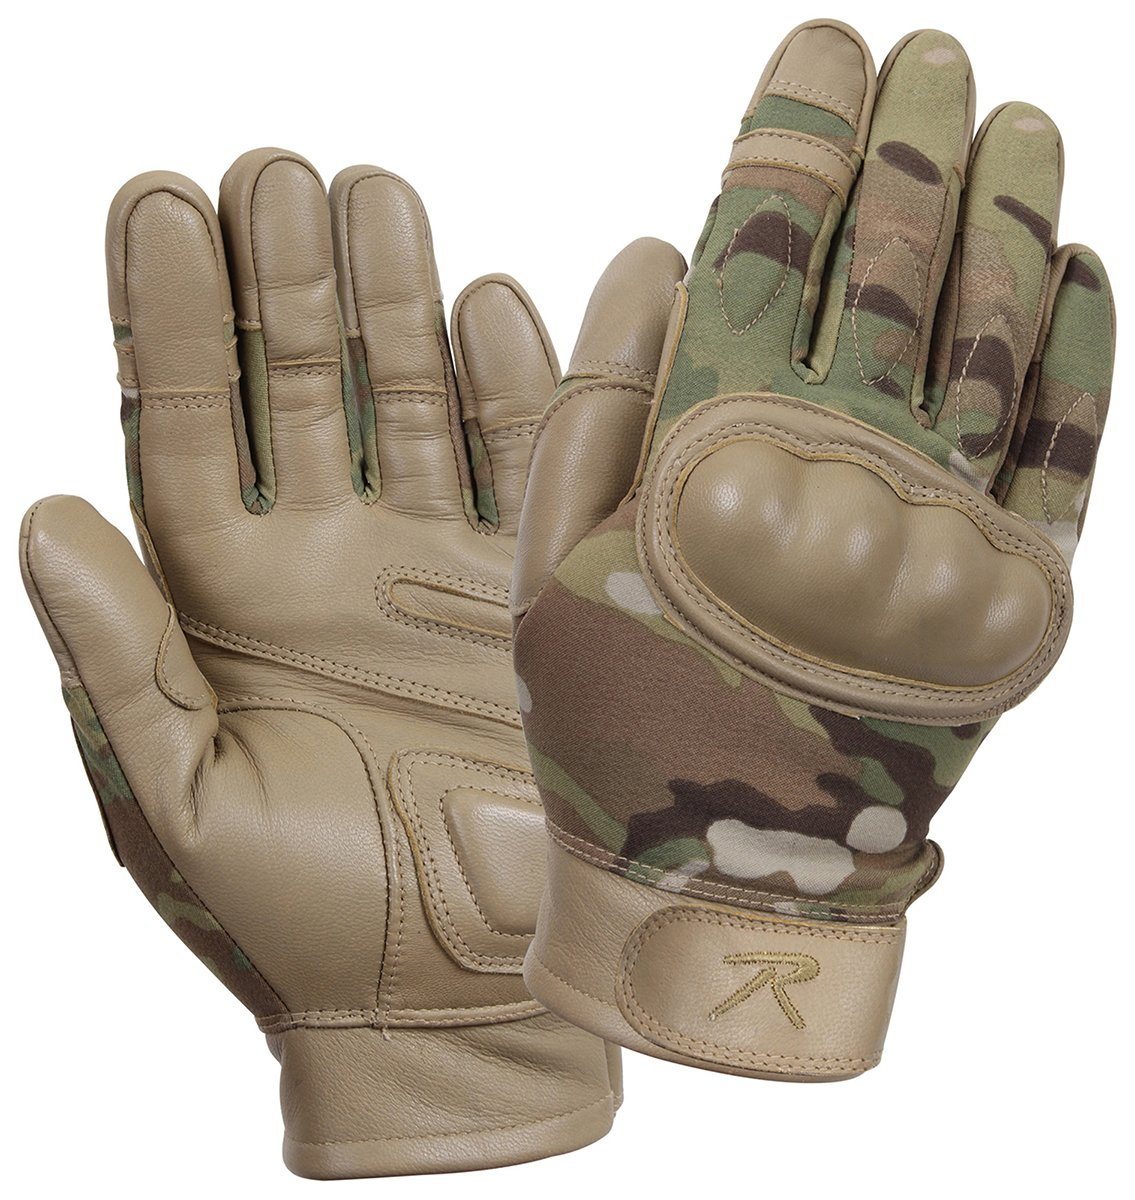 Rothco Hard Knuckle Tactical Gloves, Multicam, Small 3424SML